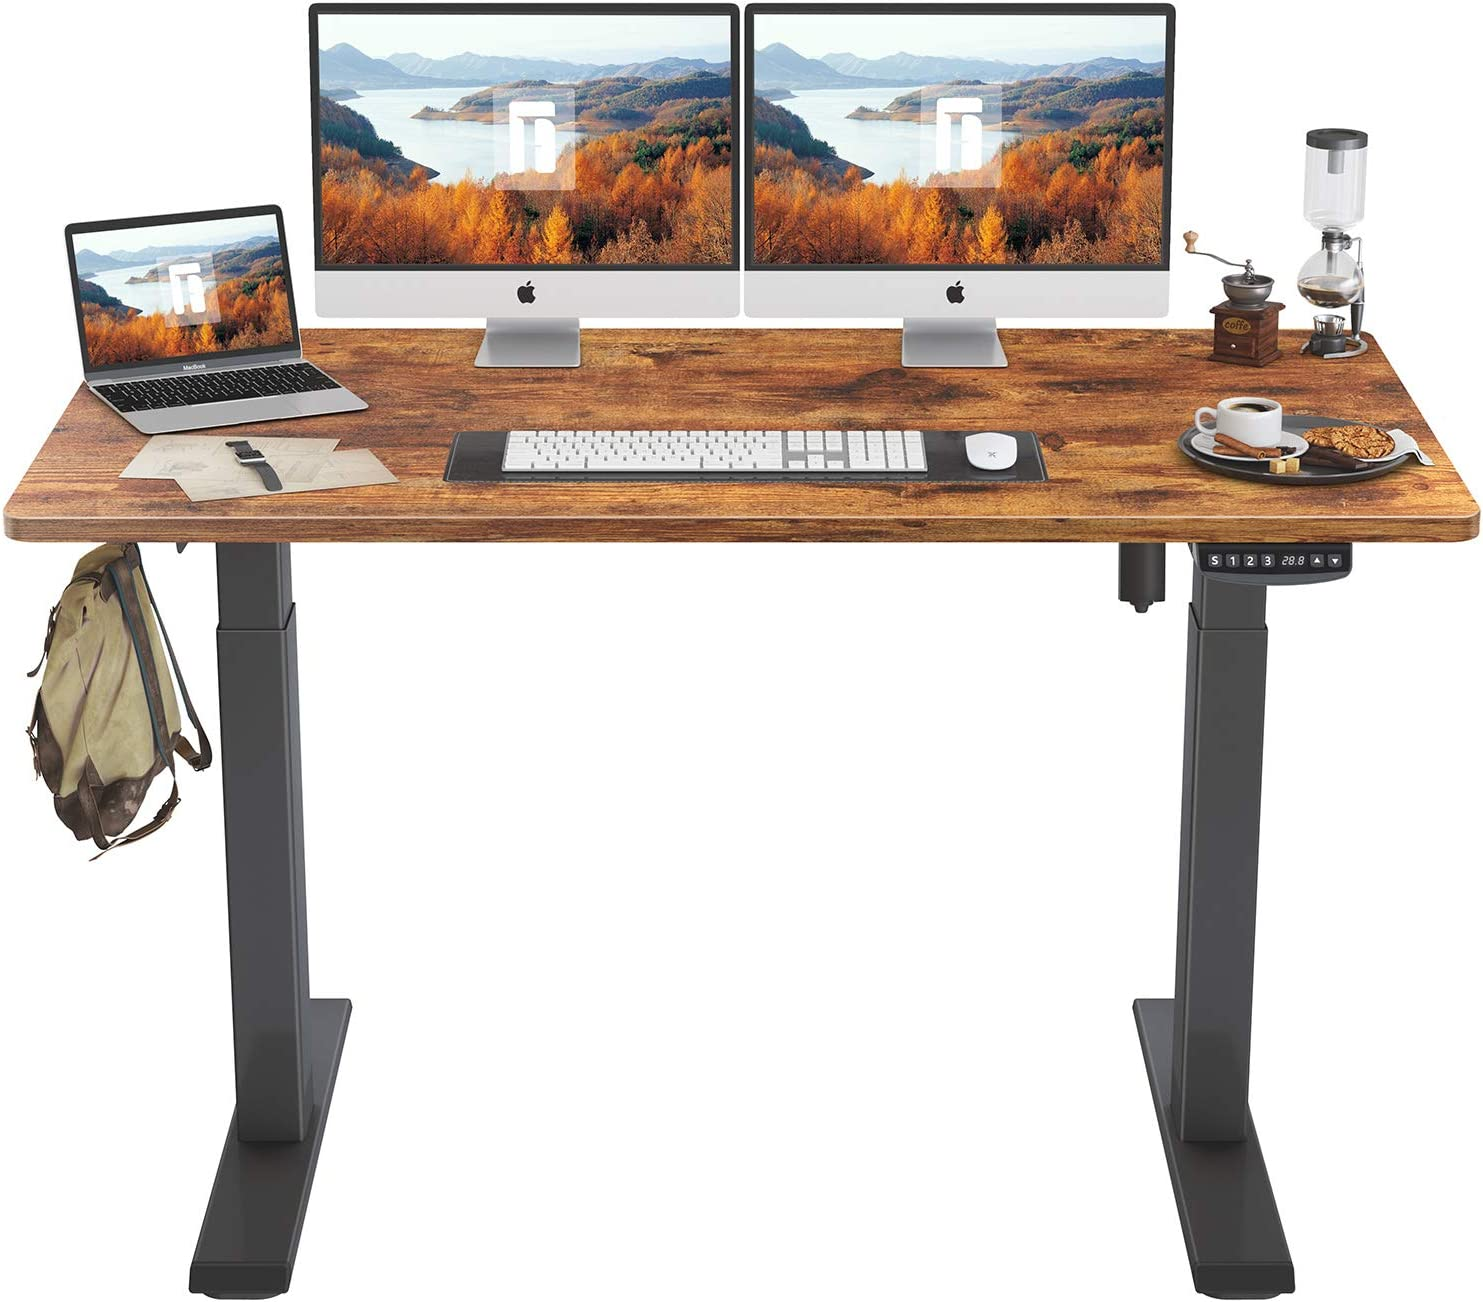 FEZIBO Height Adjustable Electric Standing Desk, 55 x 24 Inches Stand Up Table, Sit Stand Home Office Desk with Splice Board, Black Frame/Rustic Brown Top